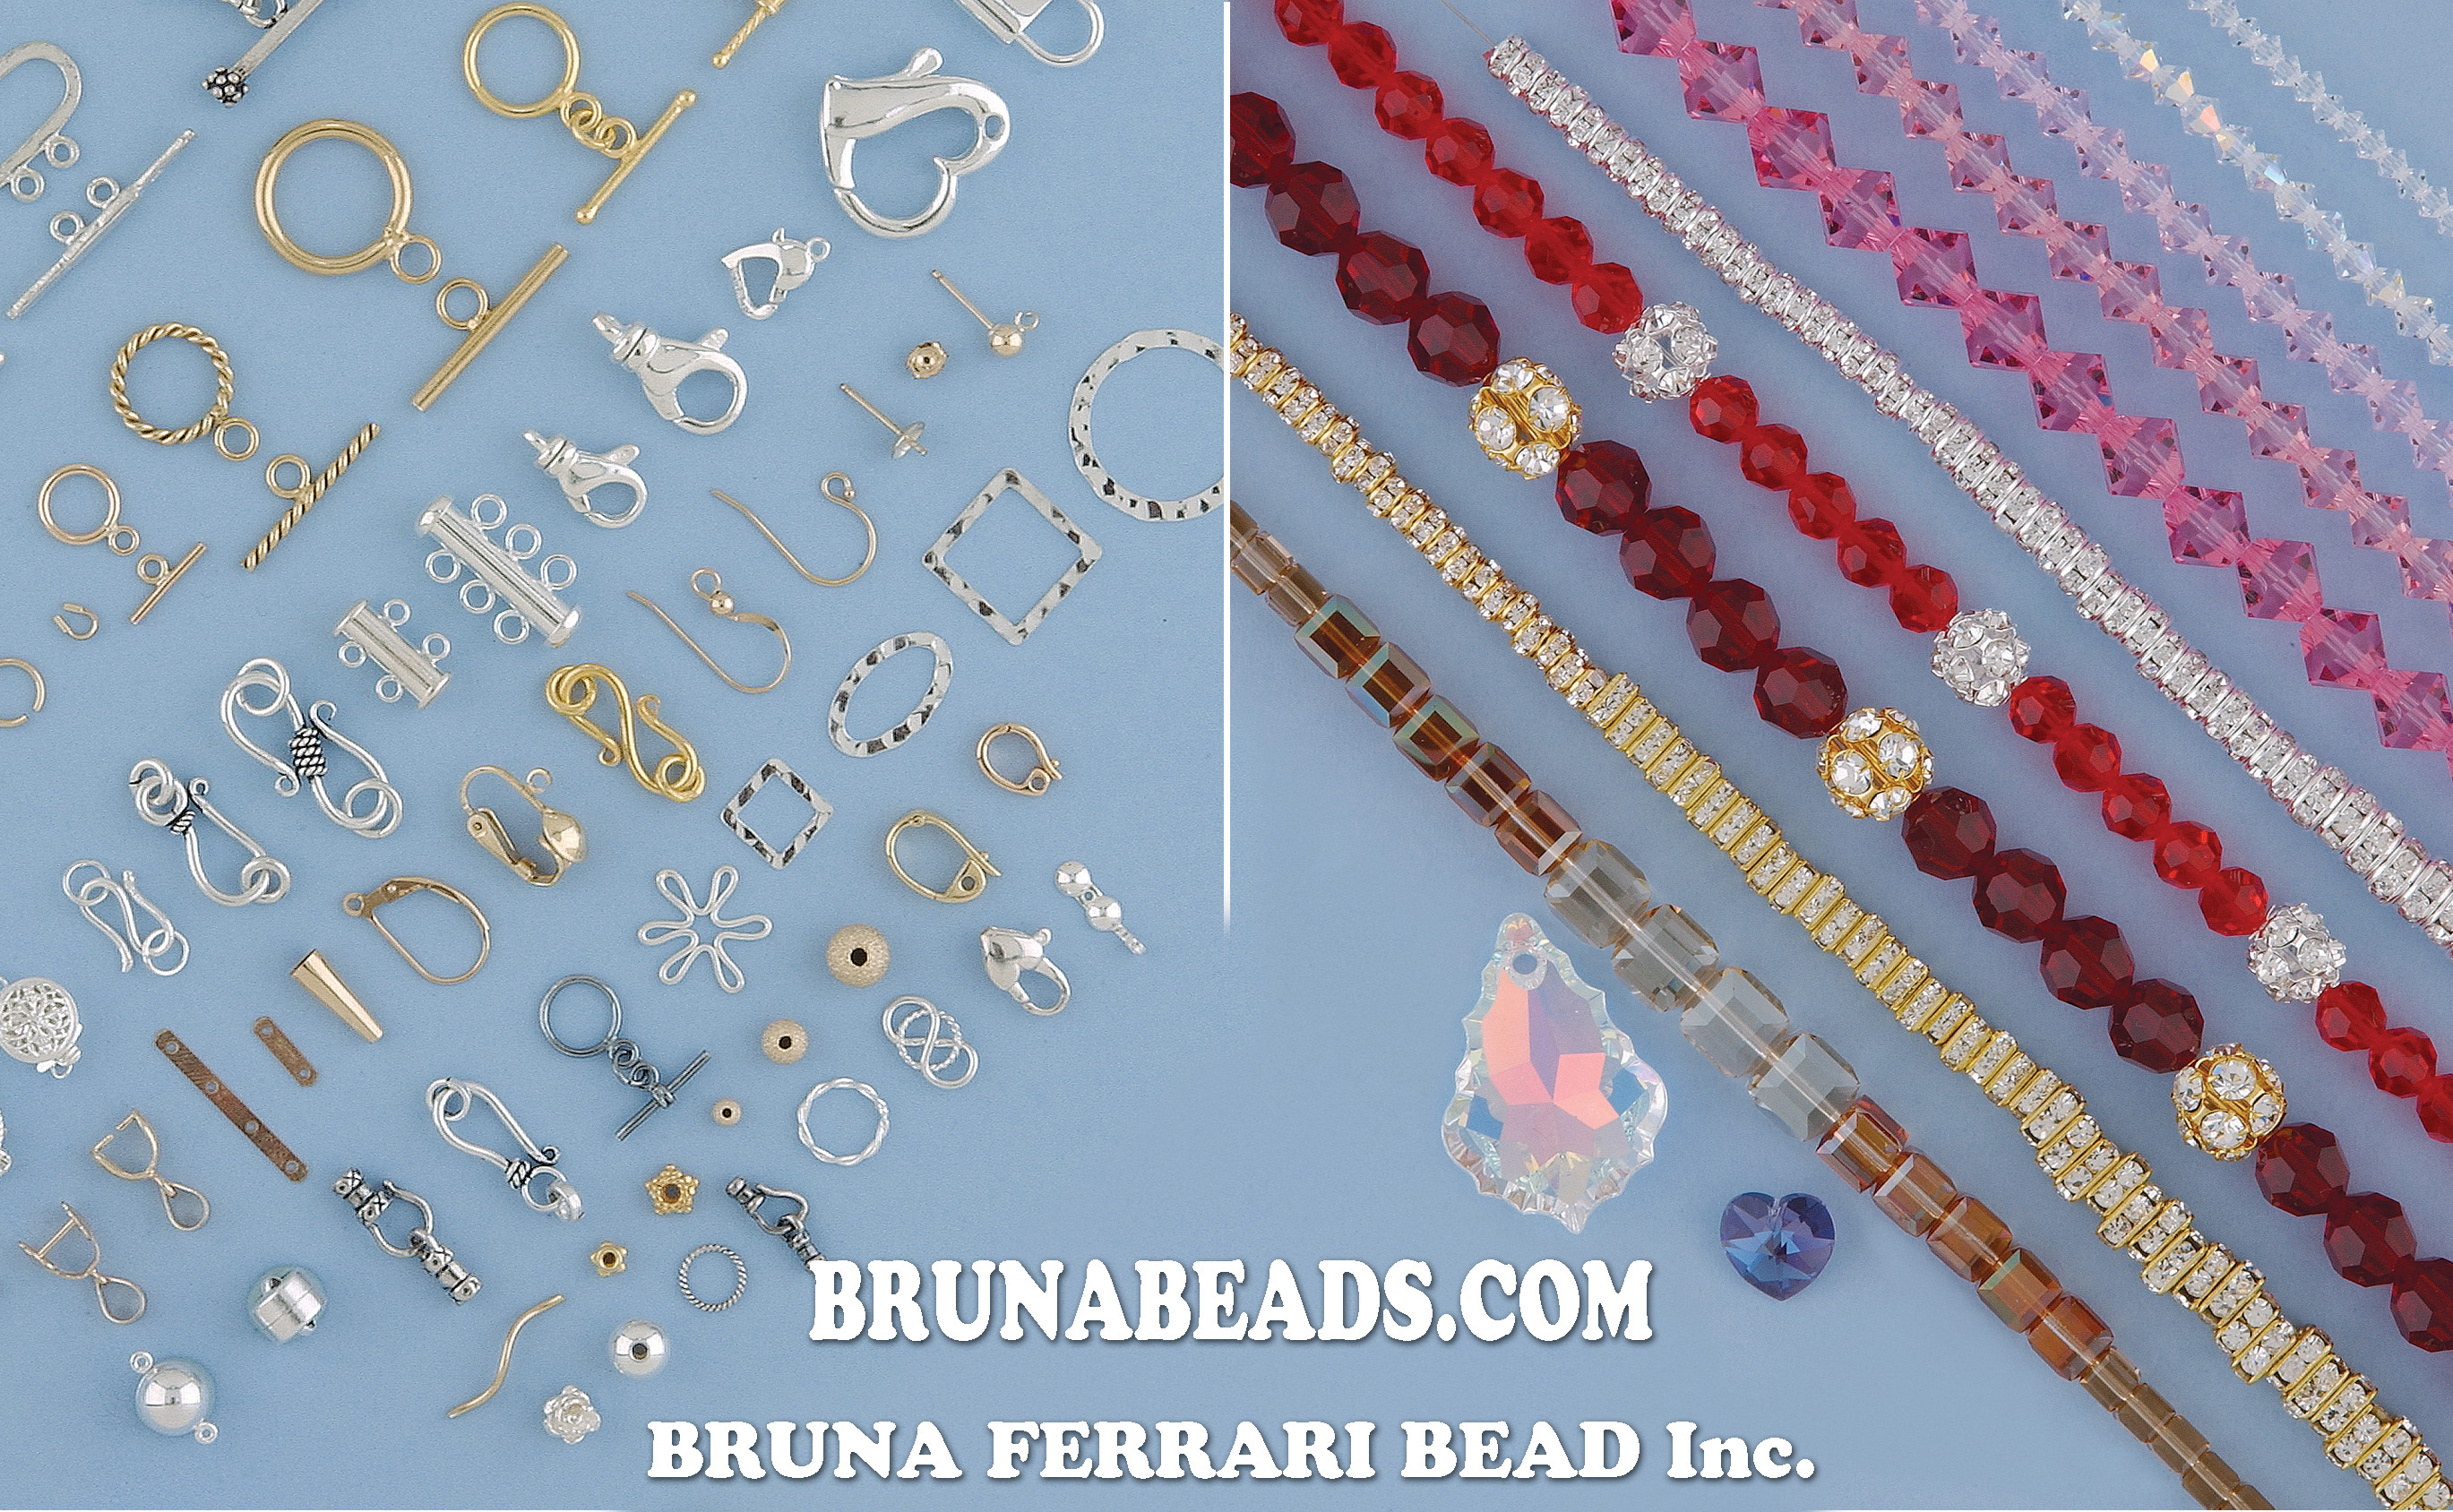 Bruna Ferrari Beads Inc